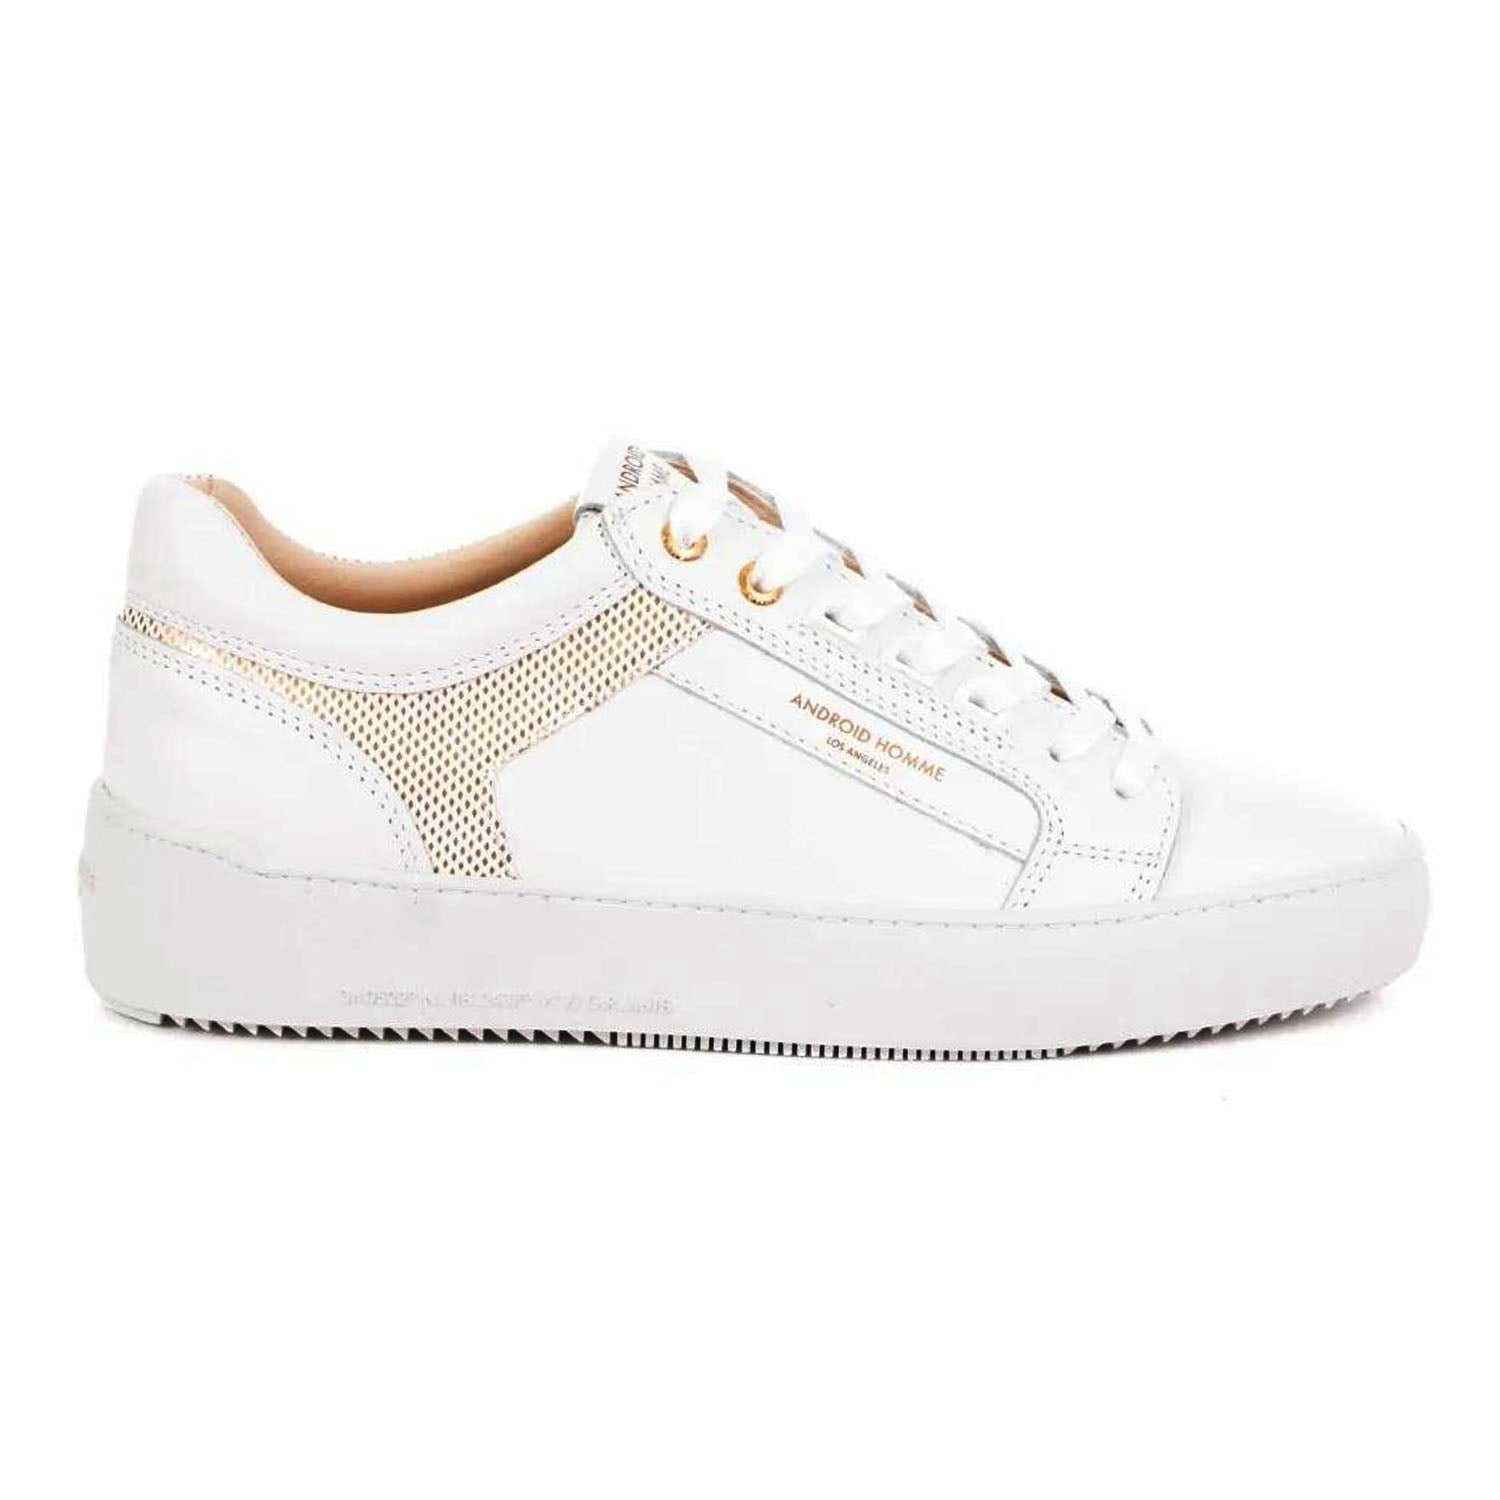 Android Homme Ghost White Gold Metal Venice Sneakers